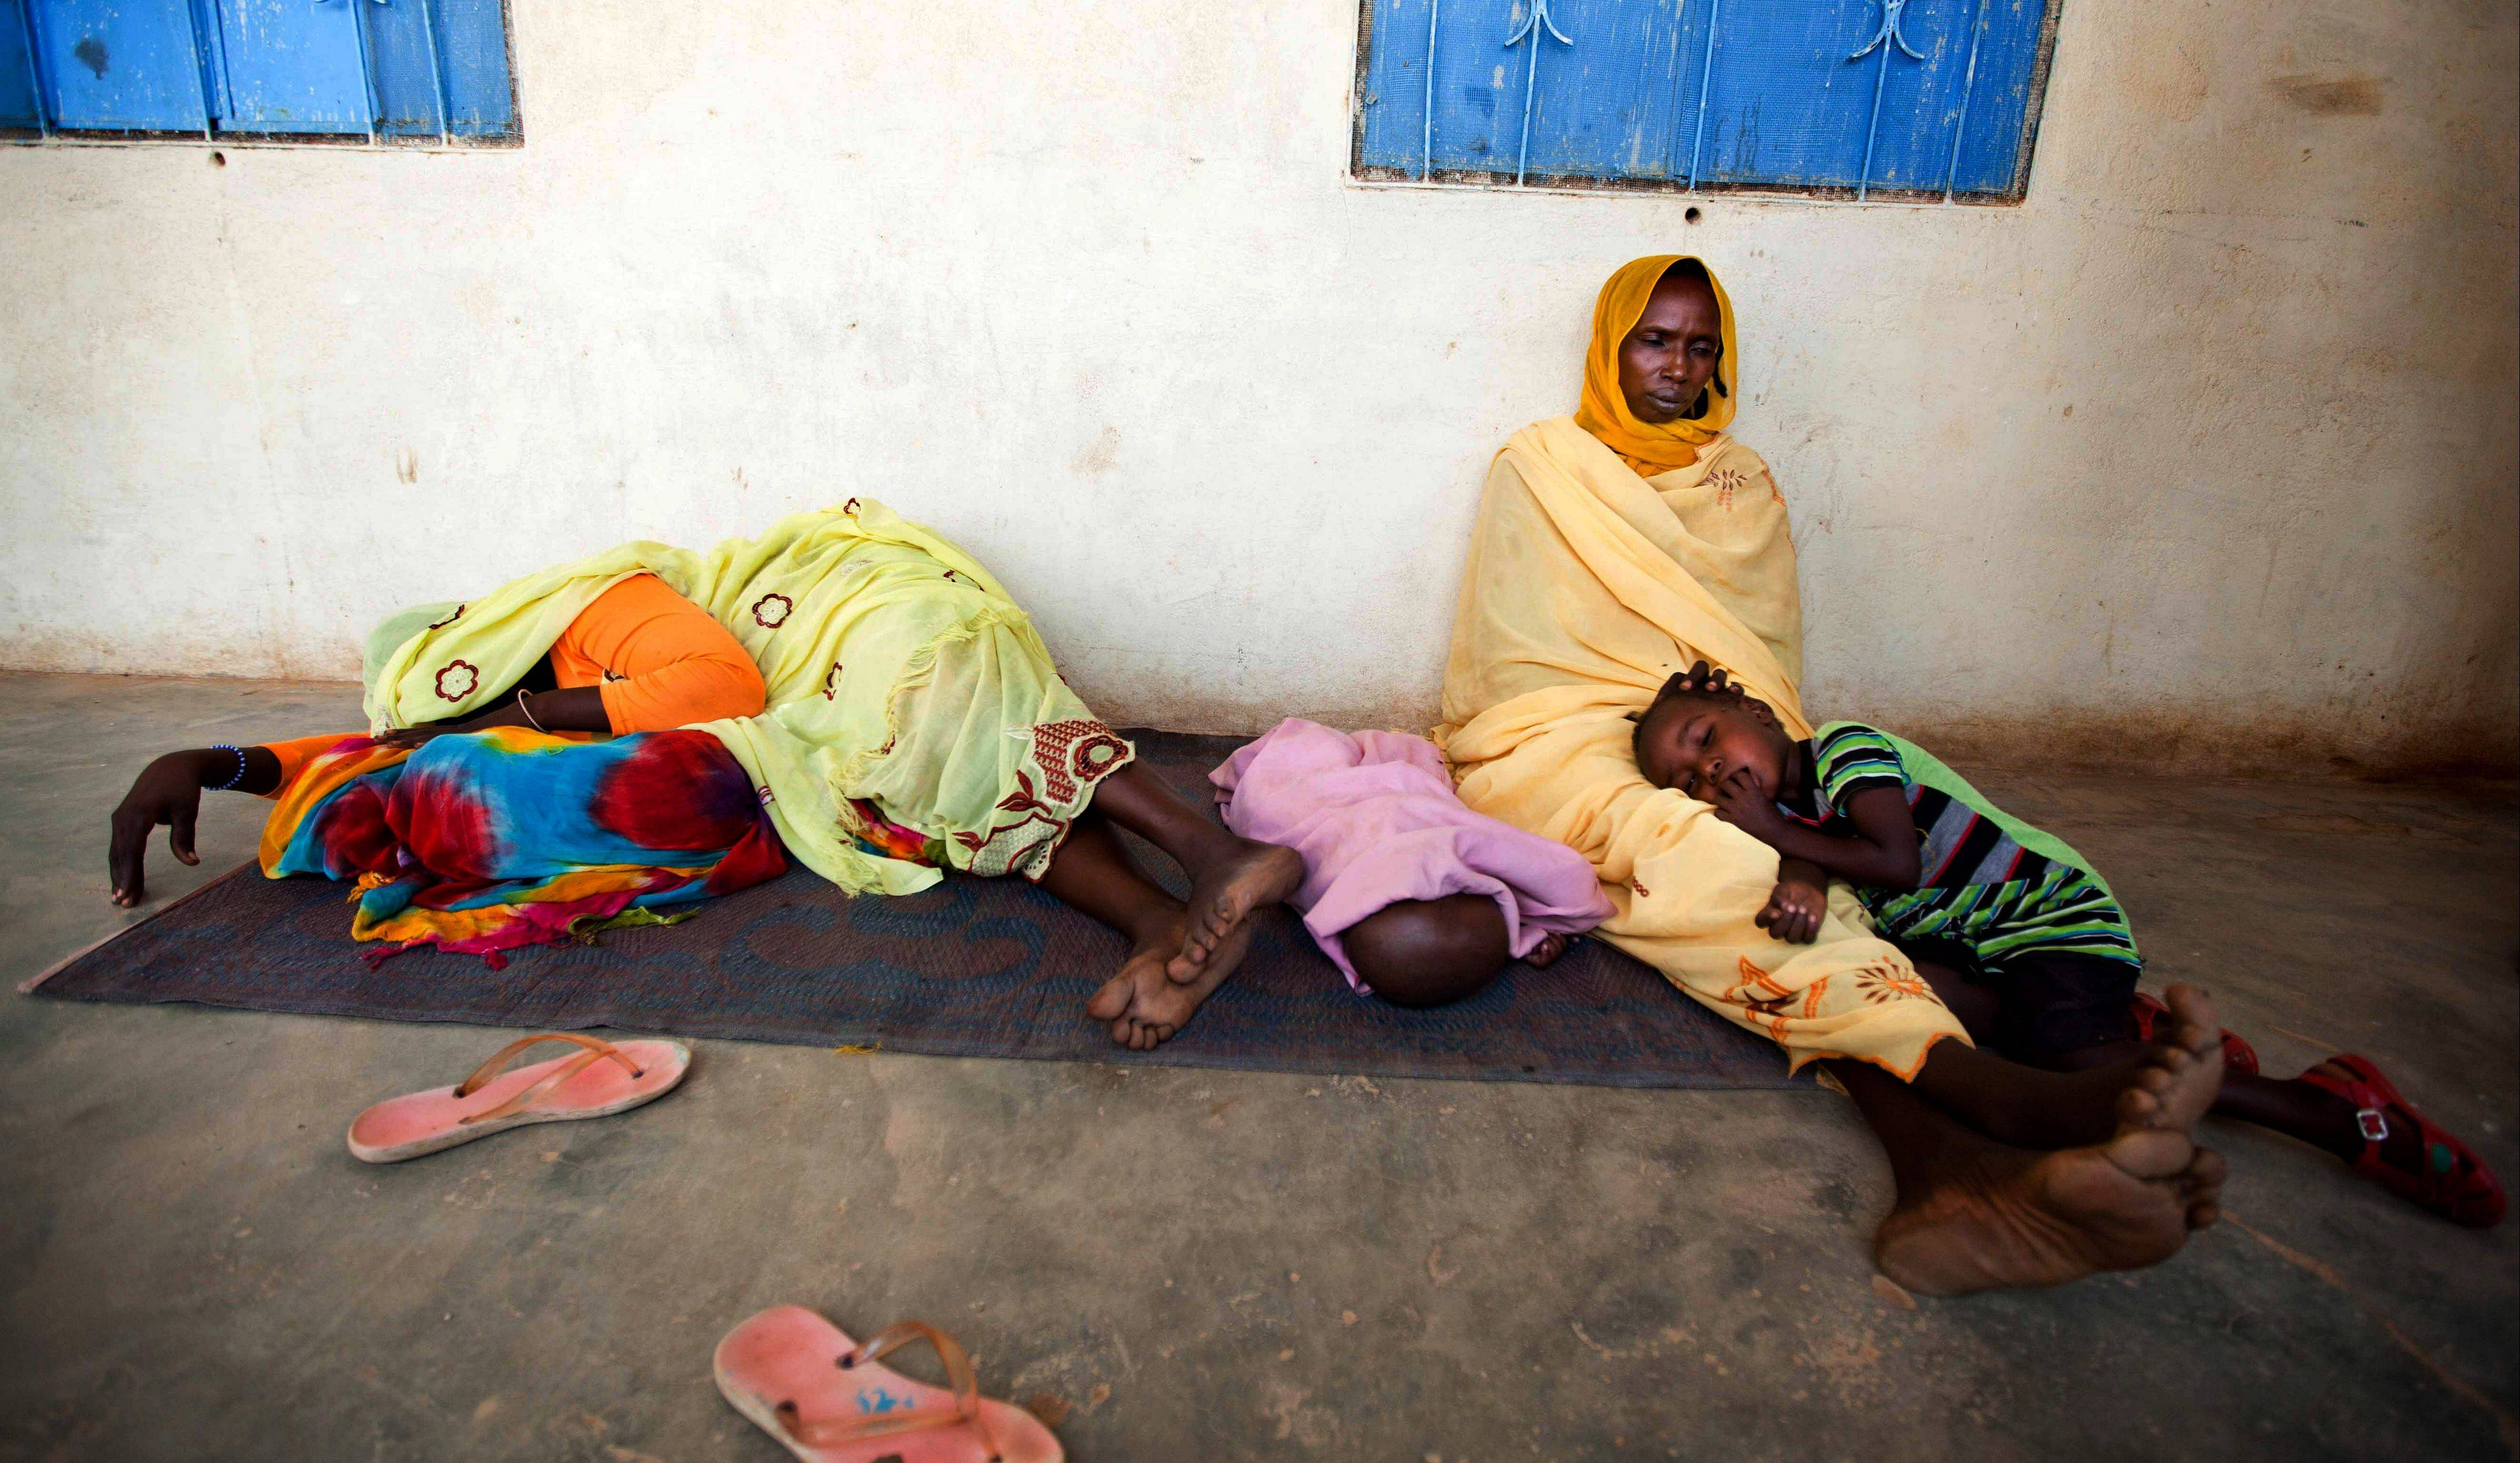 In this file photo released by the United Nations African Union Mission in Darfur, sick women and children wait to be treated at a hospital in El Sereif village, North Darfur, Sudan. Global efforts to curb malaria are stalling after a drop in funds to buy bed nets, according to a recent report from the World Health Organization.